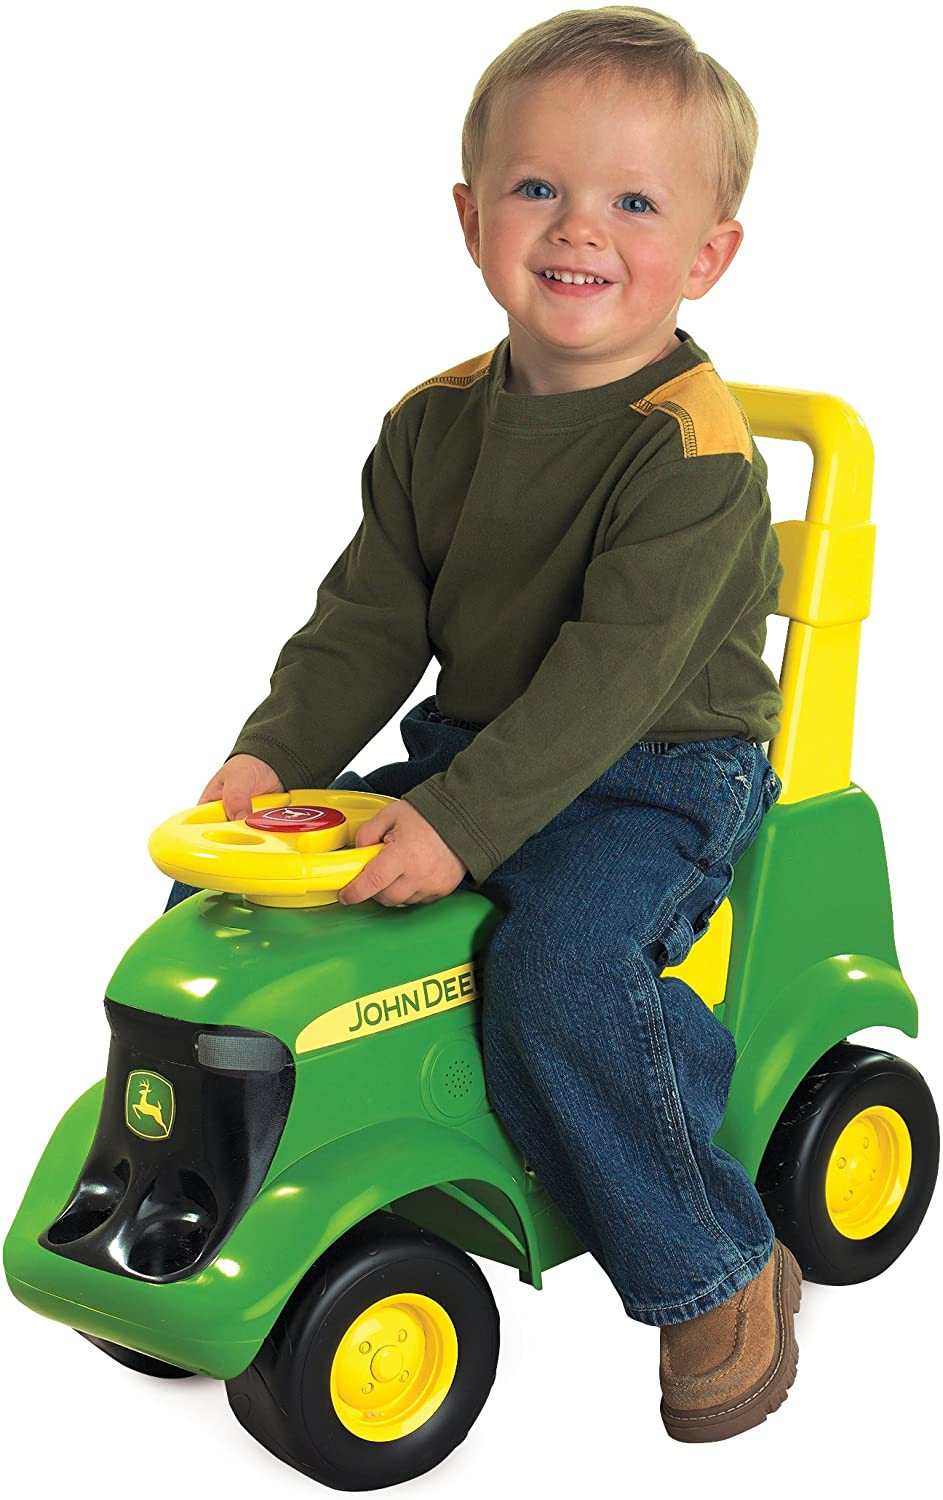 John Deere Sit 'N Scoot